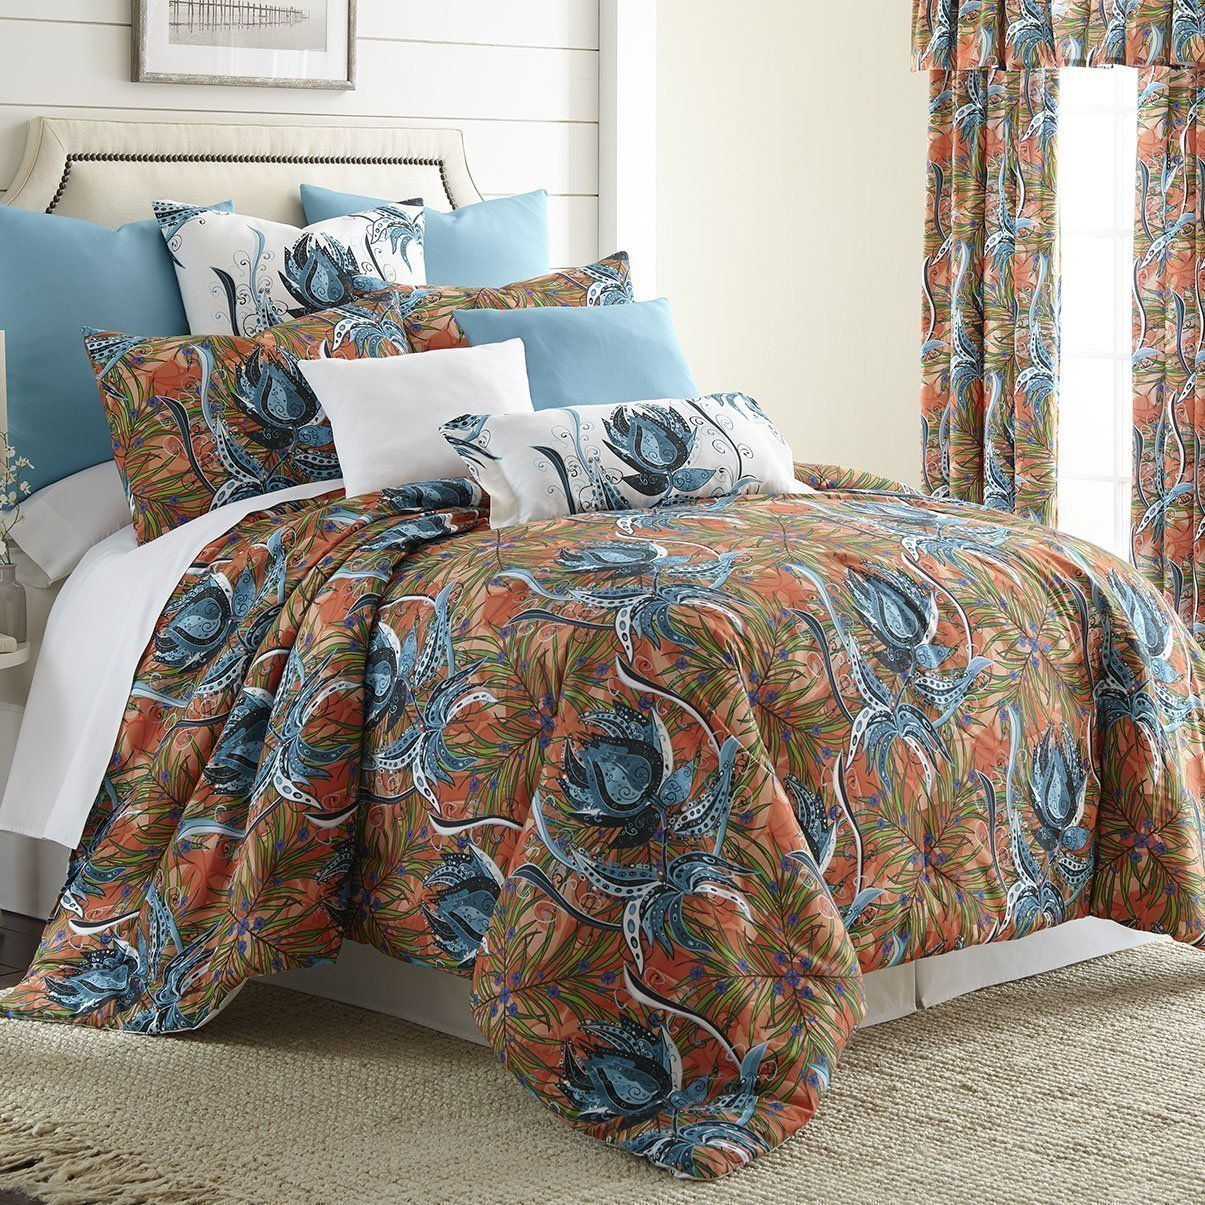 Tropical Bloom Duvet Cover Set Queen Size